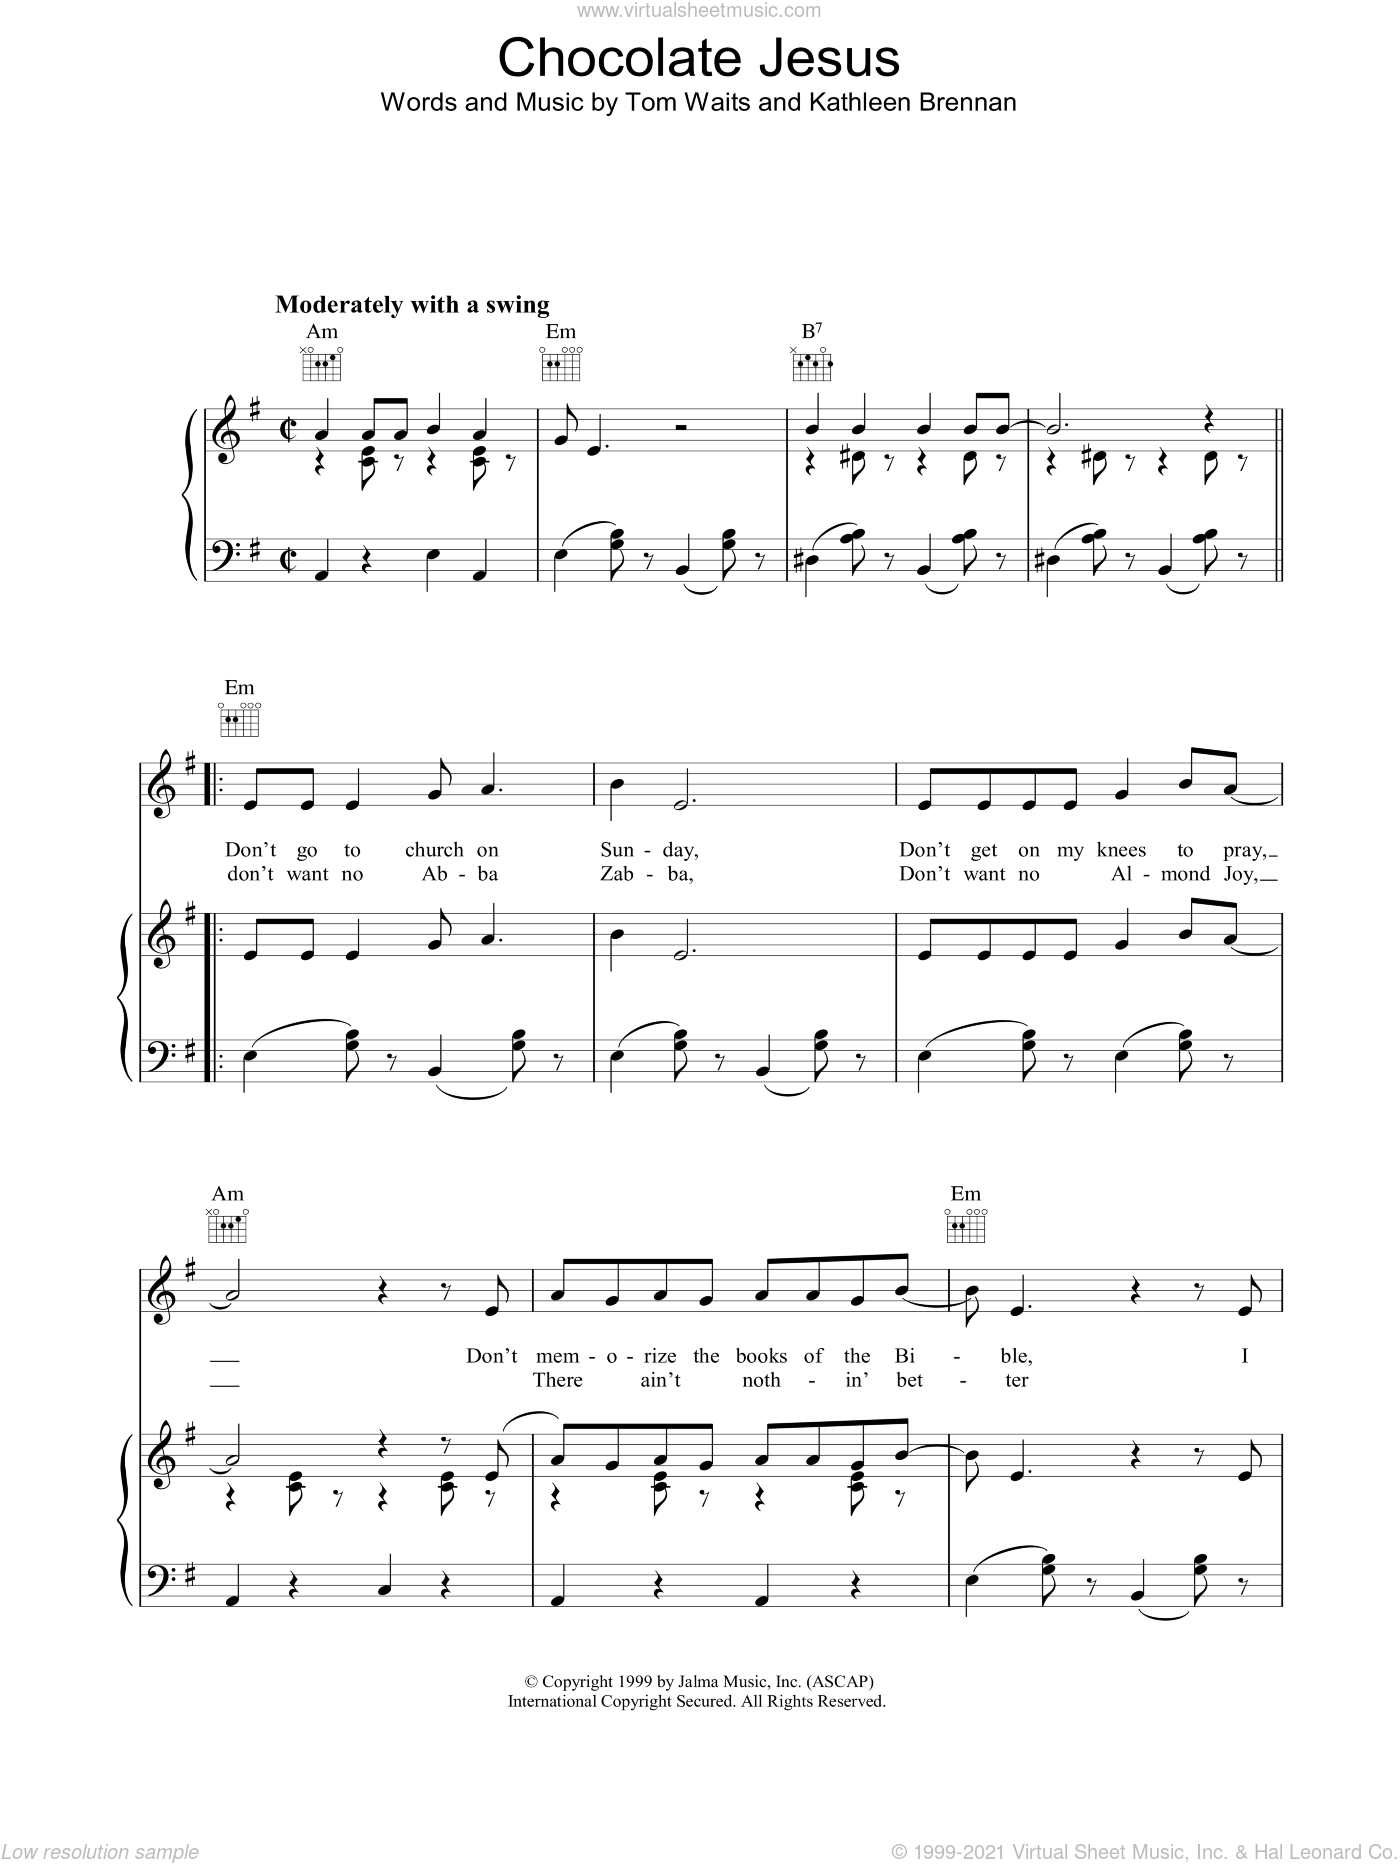 Chocolate Jesus sheet music for voice, piano or guitar by Tom Waits